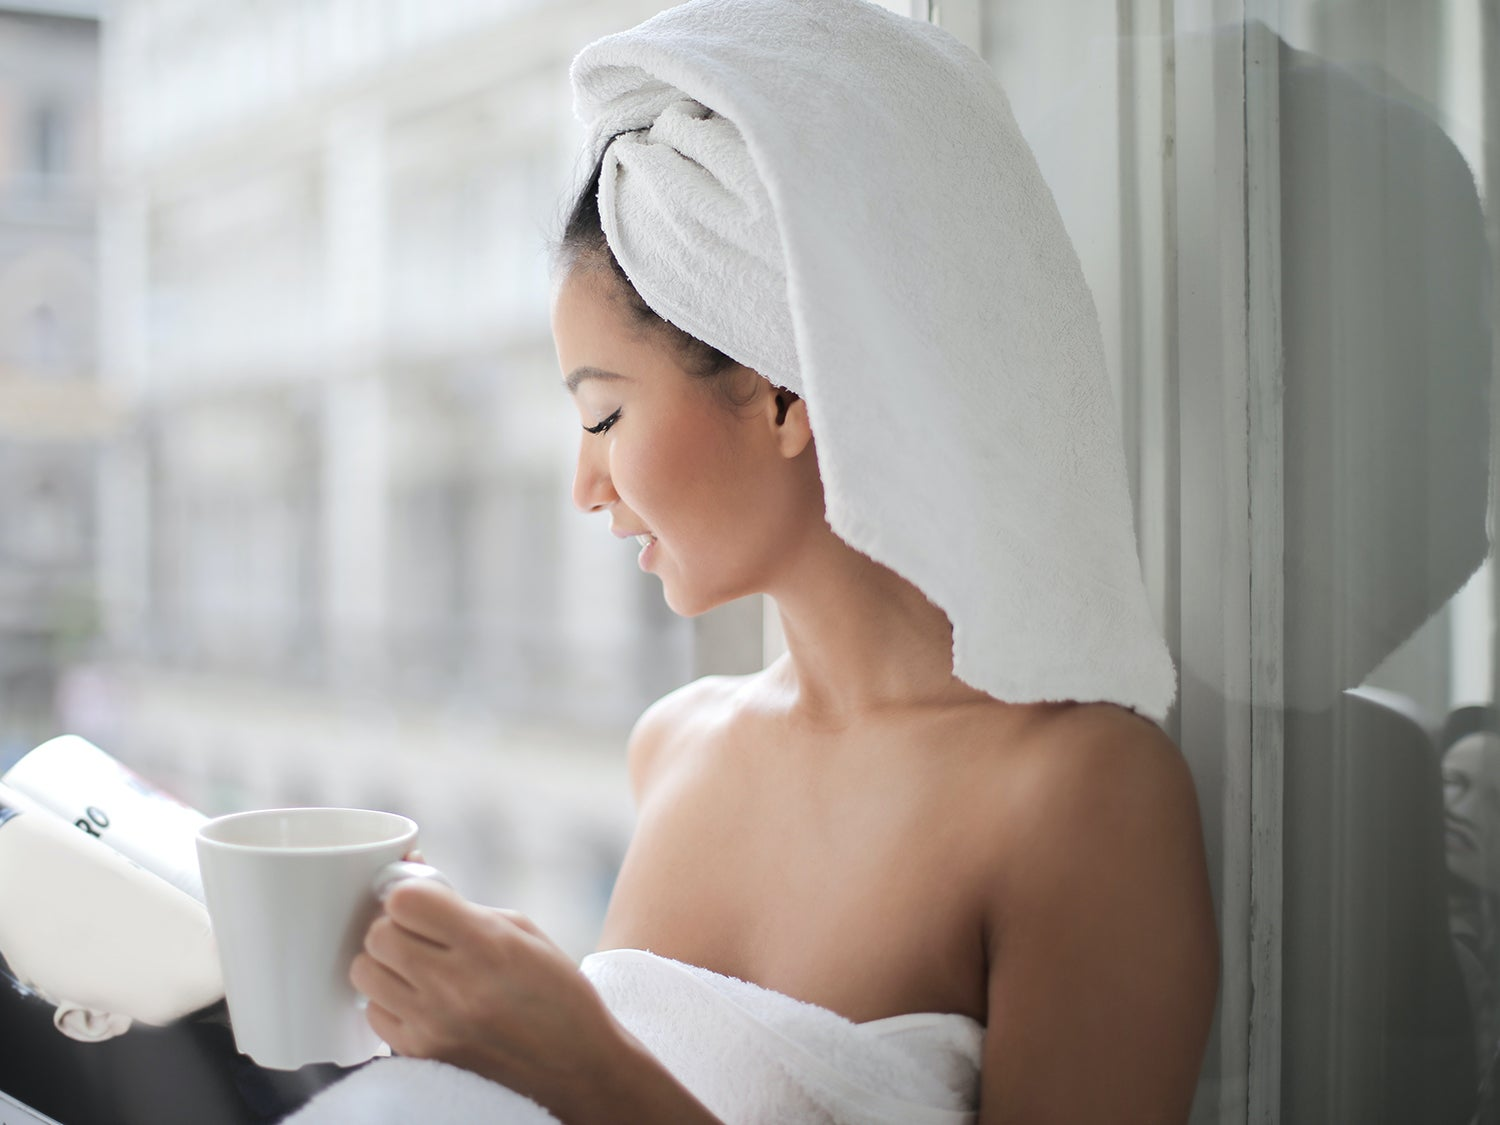 Woman reading with cup of coffee and wearing microfiber hair towel out of the shower.